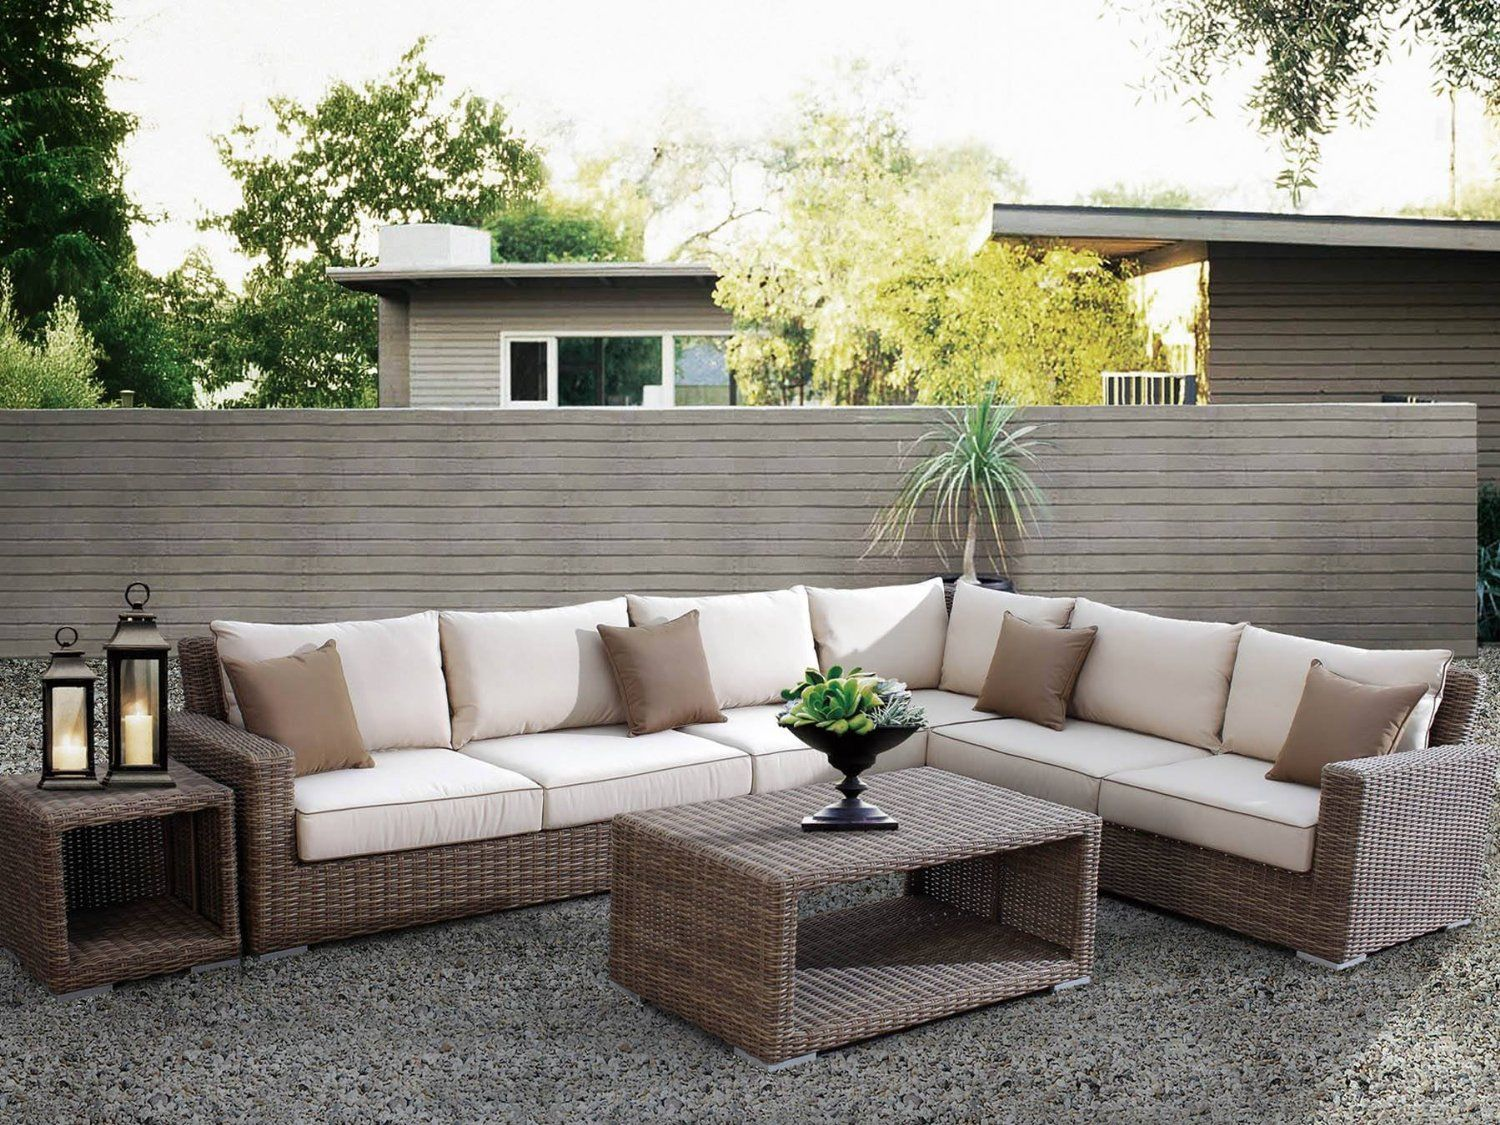 cushions garden set coronado patio w outdoor sofa lawn furniture sunbrella pin wicker seating com sectional resin amazon